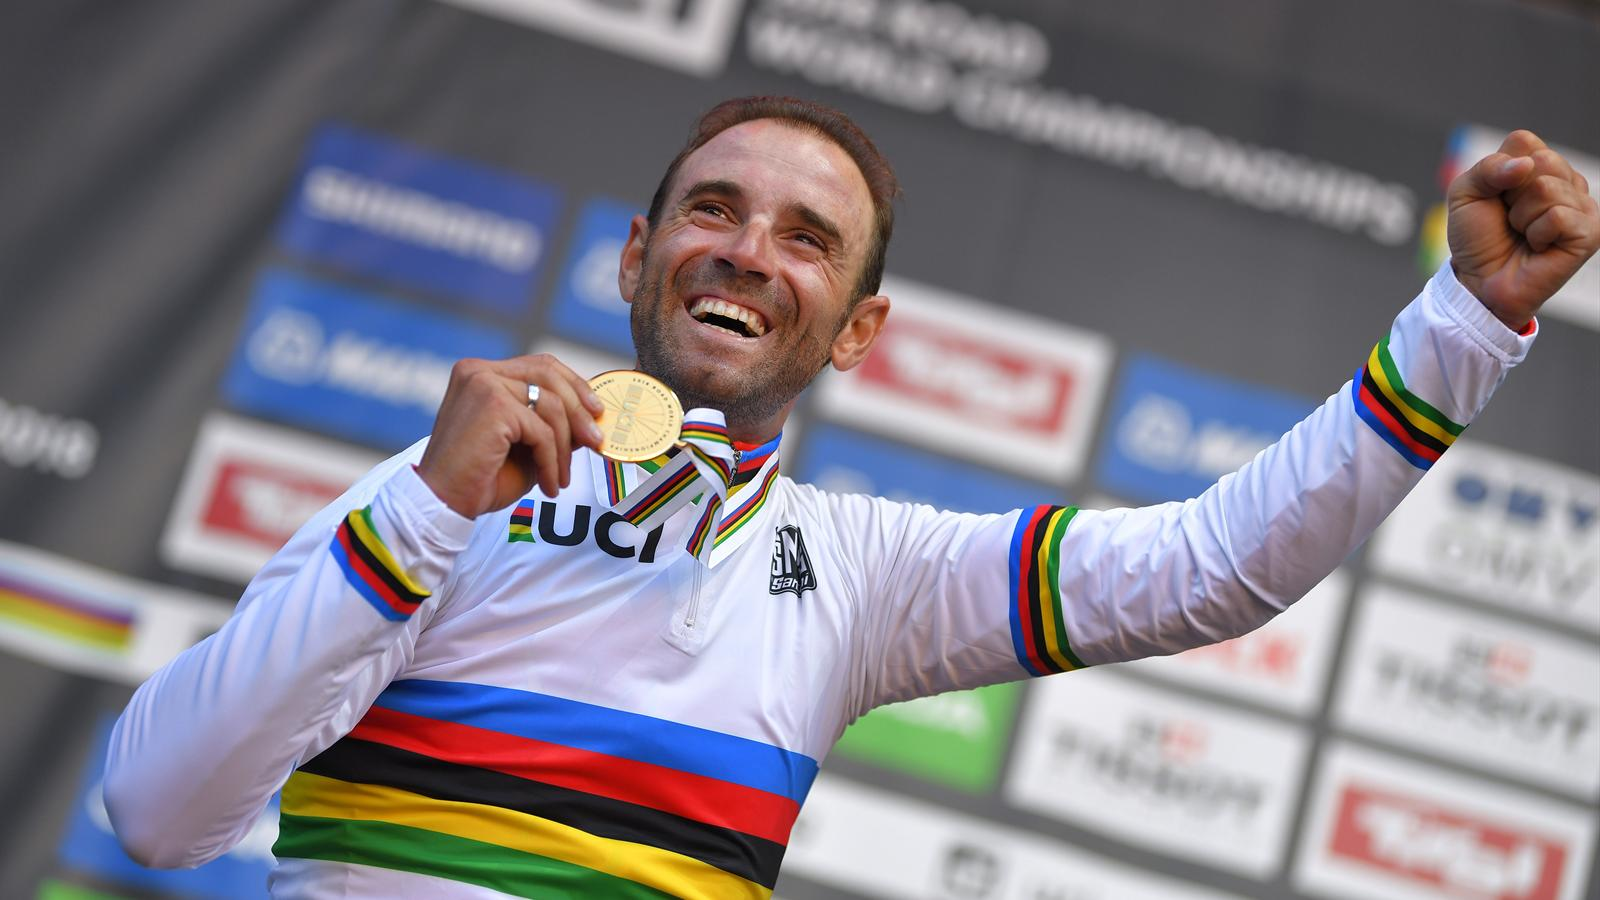 17cb71fce1ed4 Alejandro Valverde wins dramatic road race to become World Champion at 38